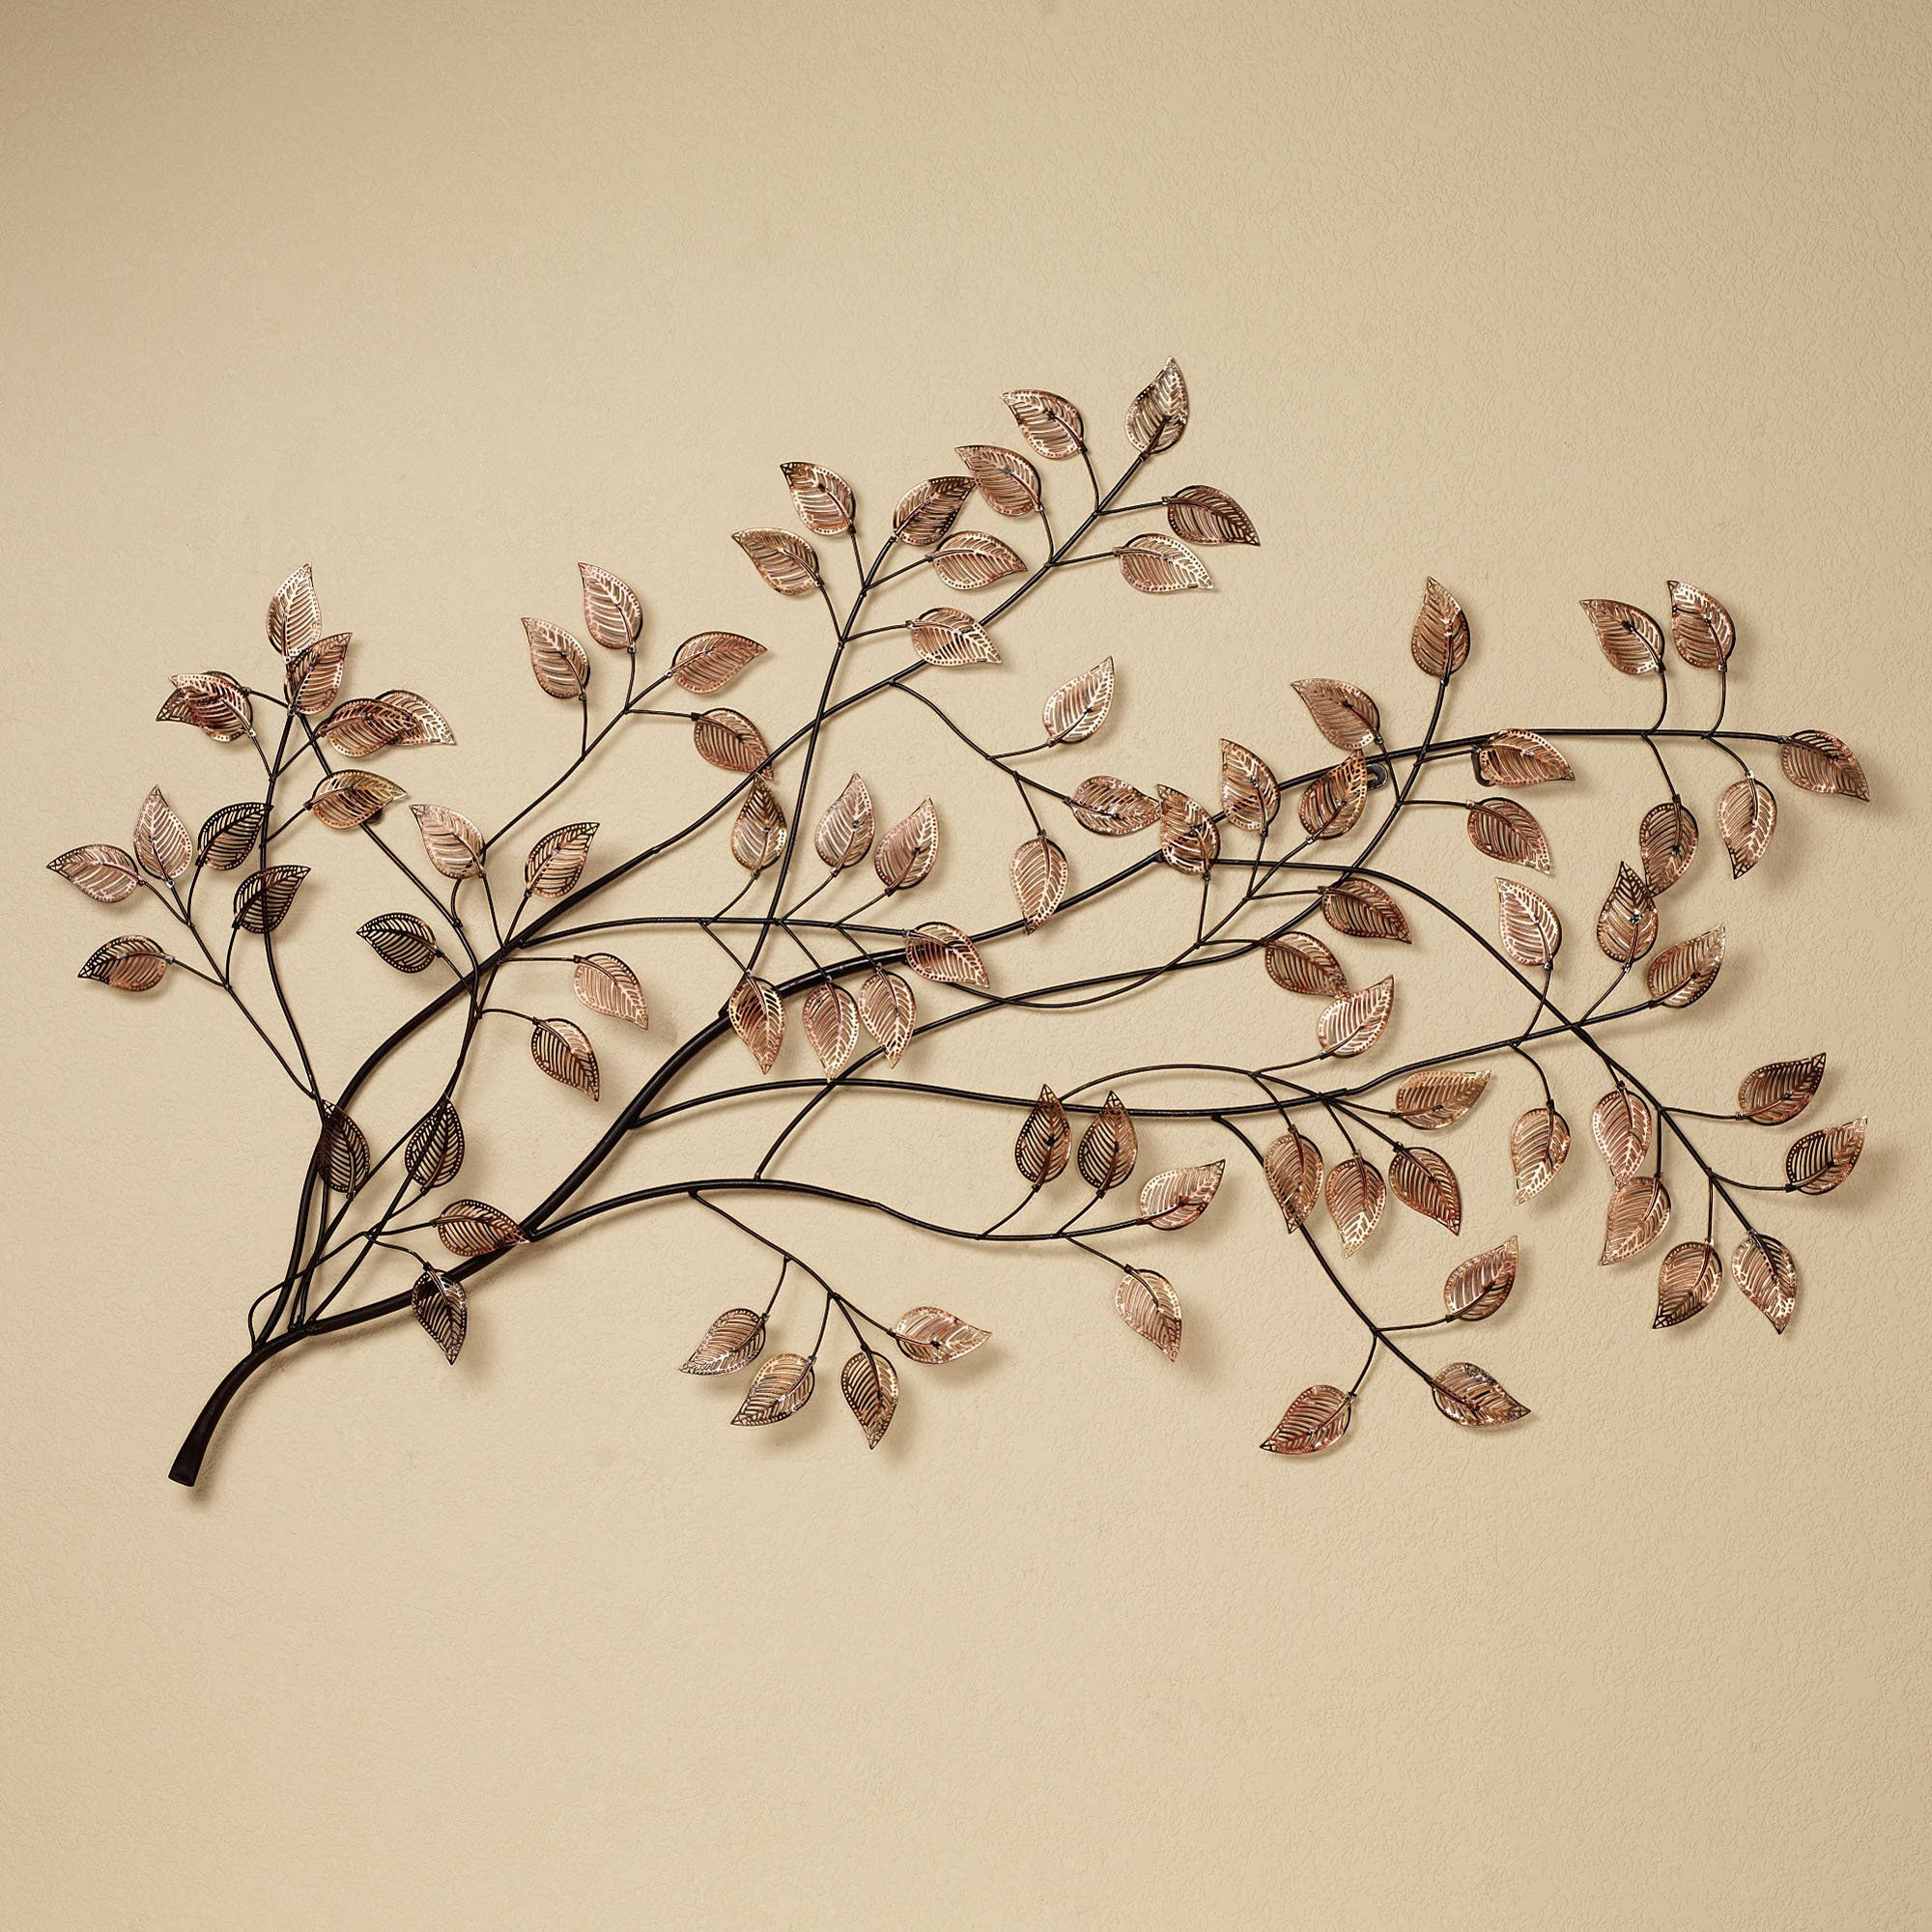 Walls & Accents Pertaining To Current Leaves Metal Sculpture Wall Decor (Gallery 1 of 20)